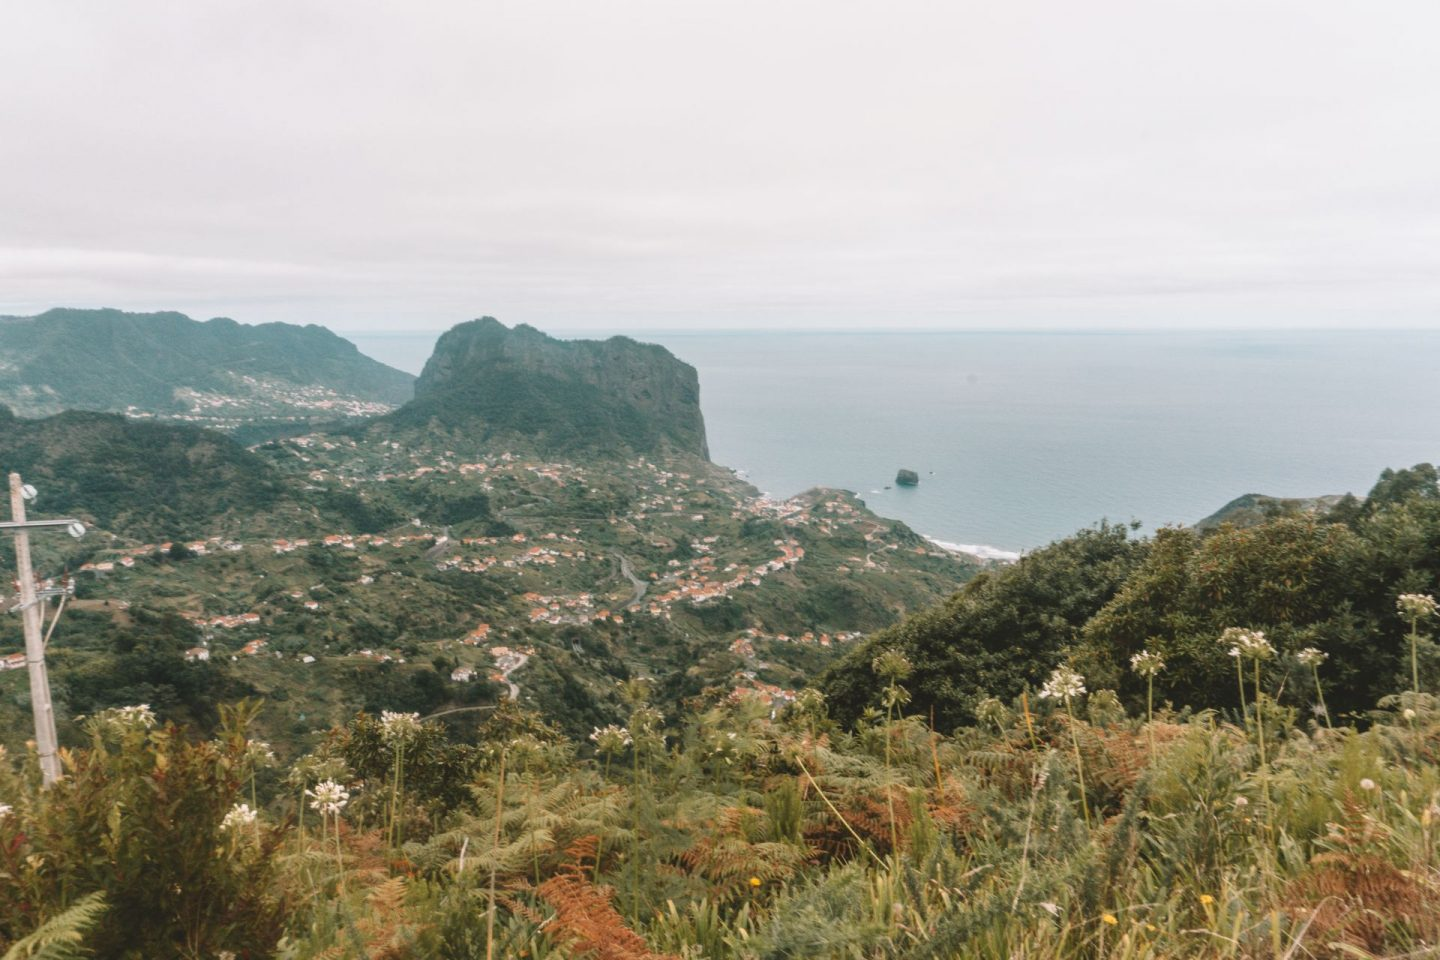 view over the island madeira with villages and the ocean